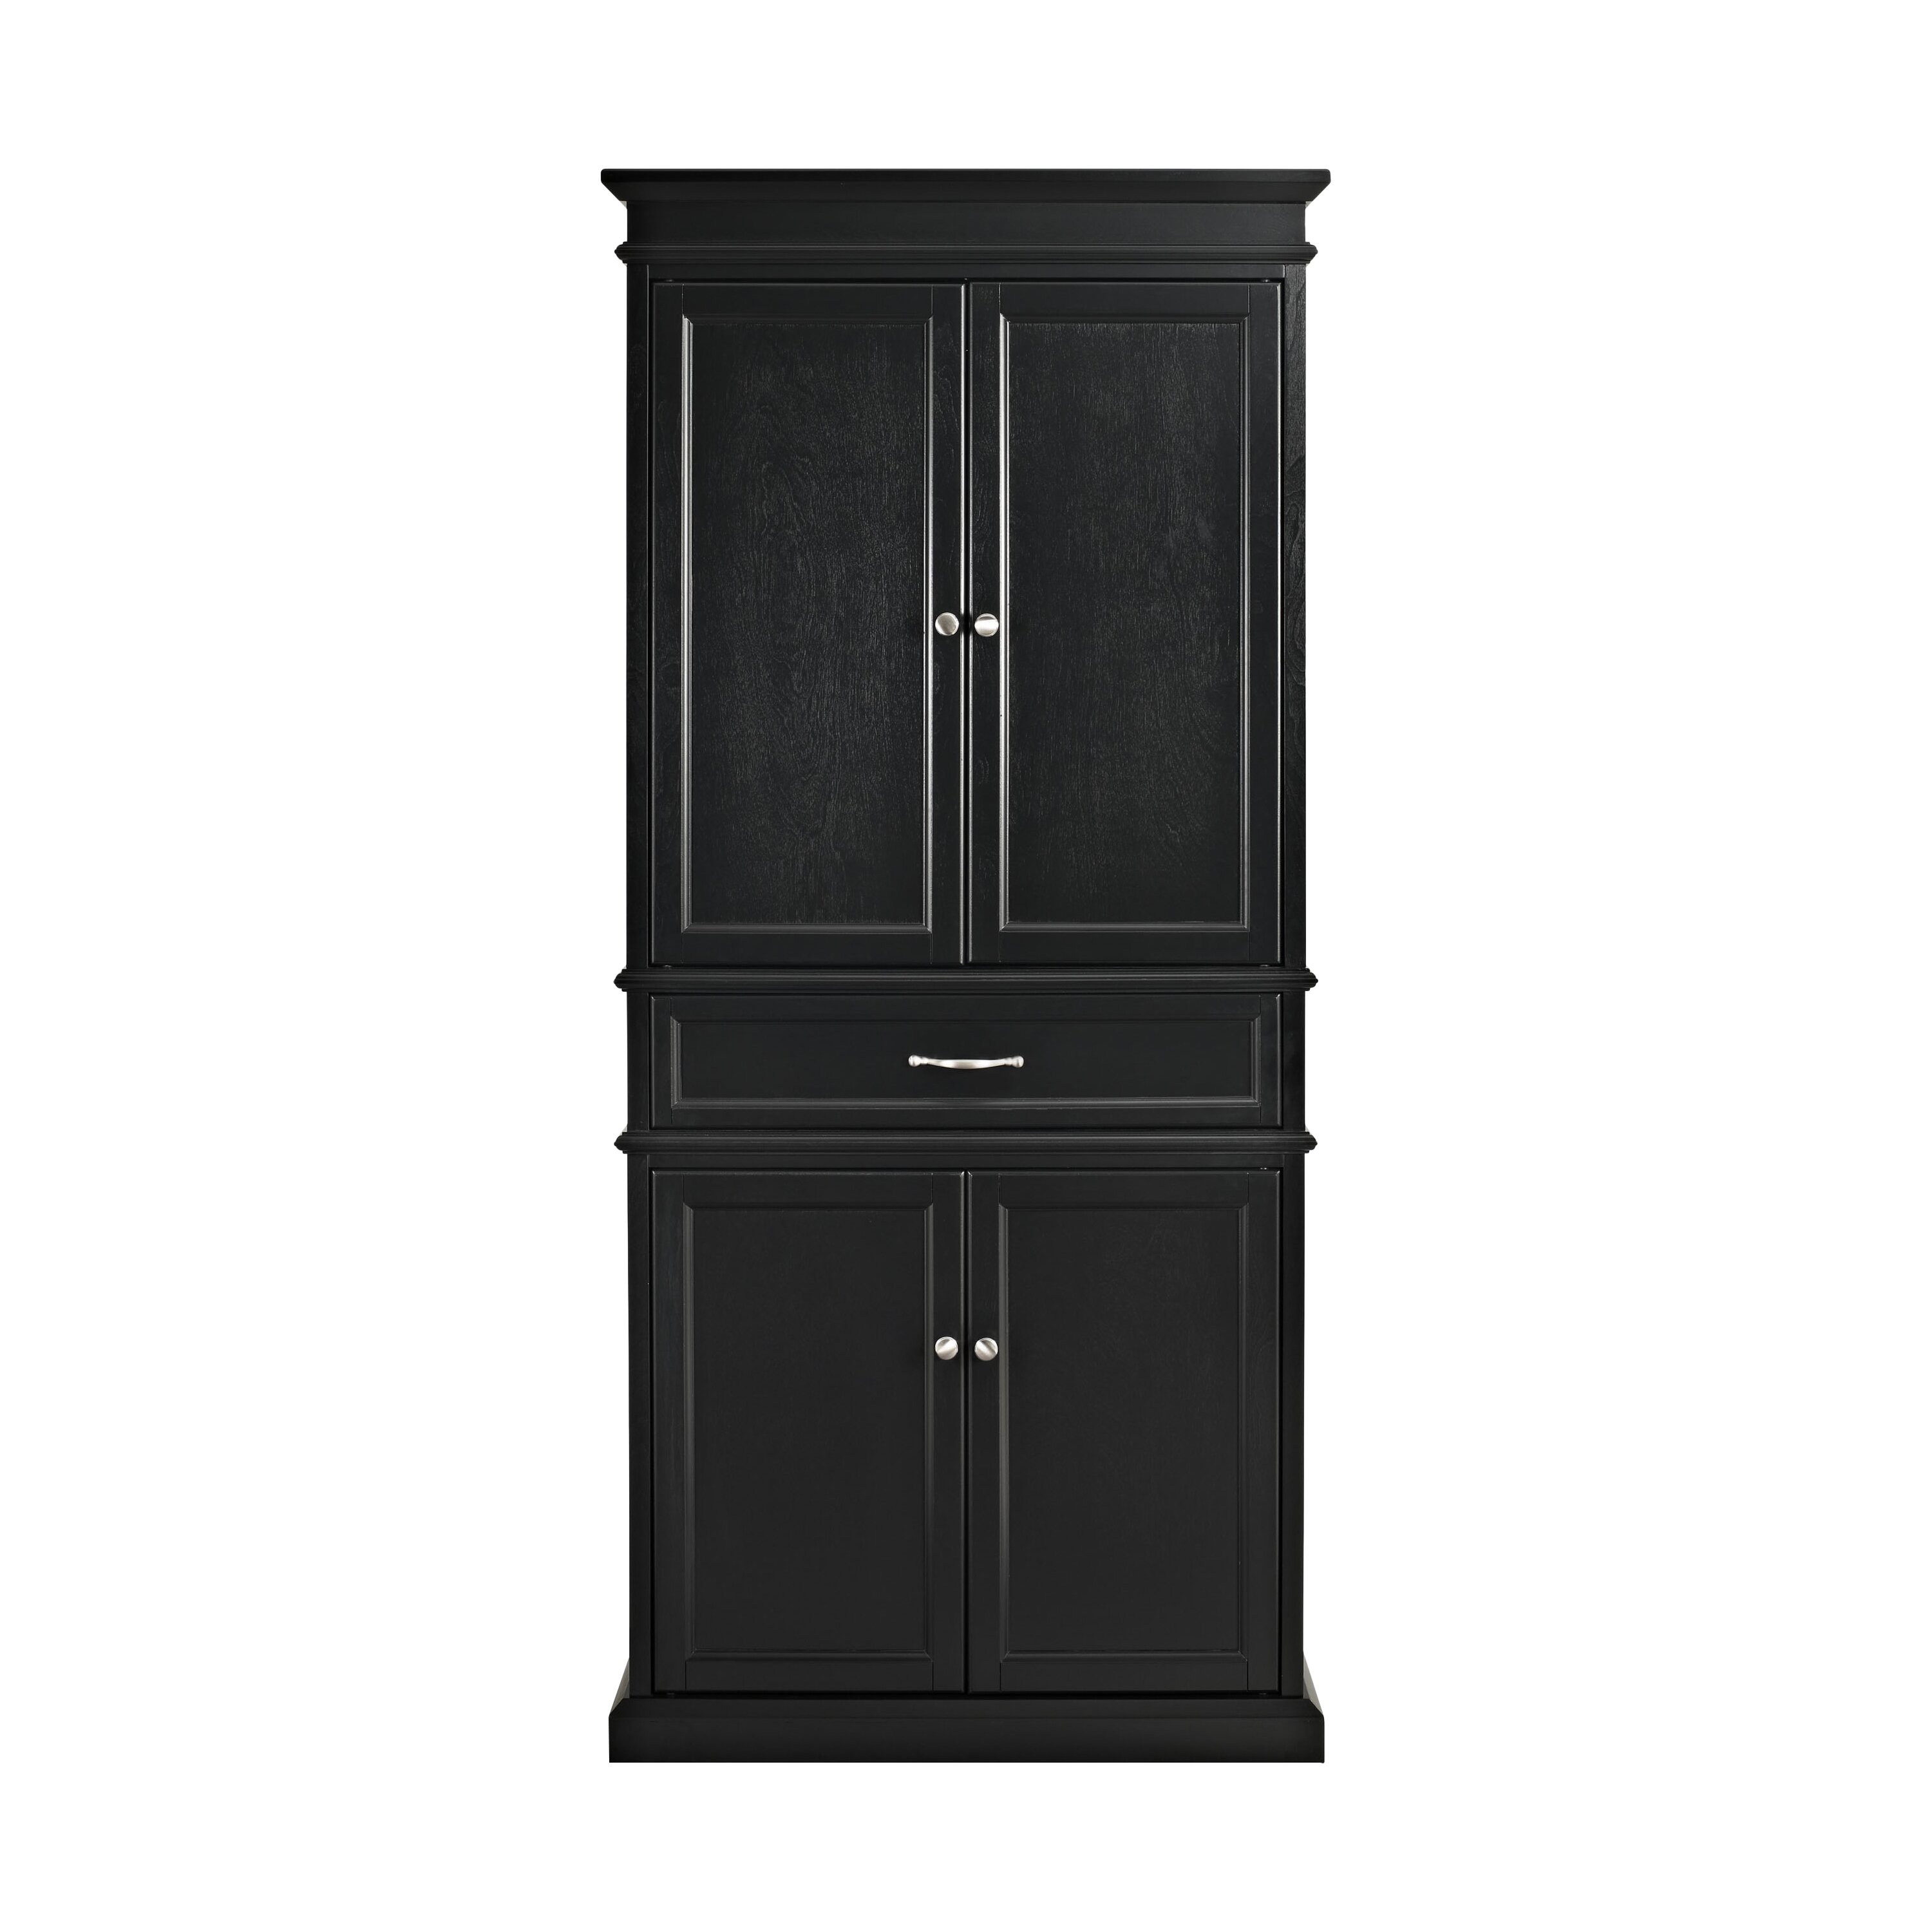 Unfinished Kitchen Pantry: Pantry Cabinet: Closetmaid Pantry Cabinet Alder With